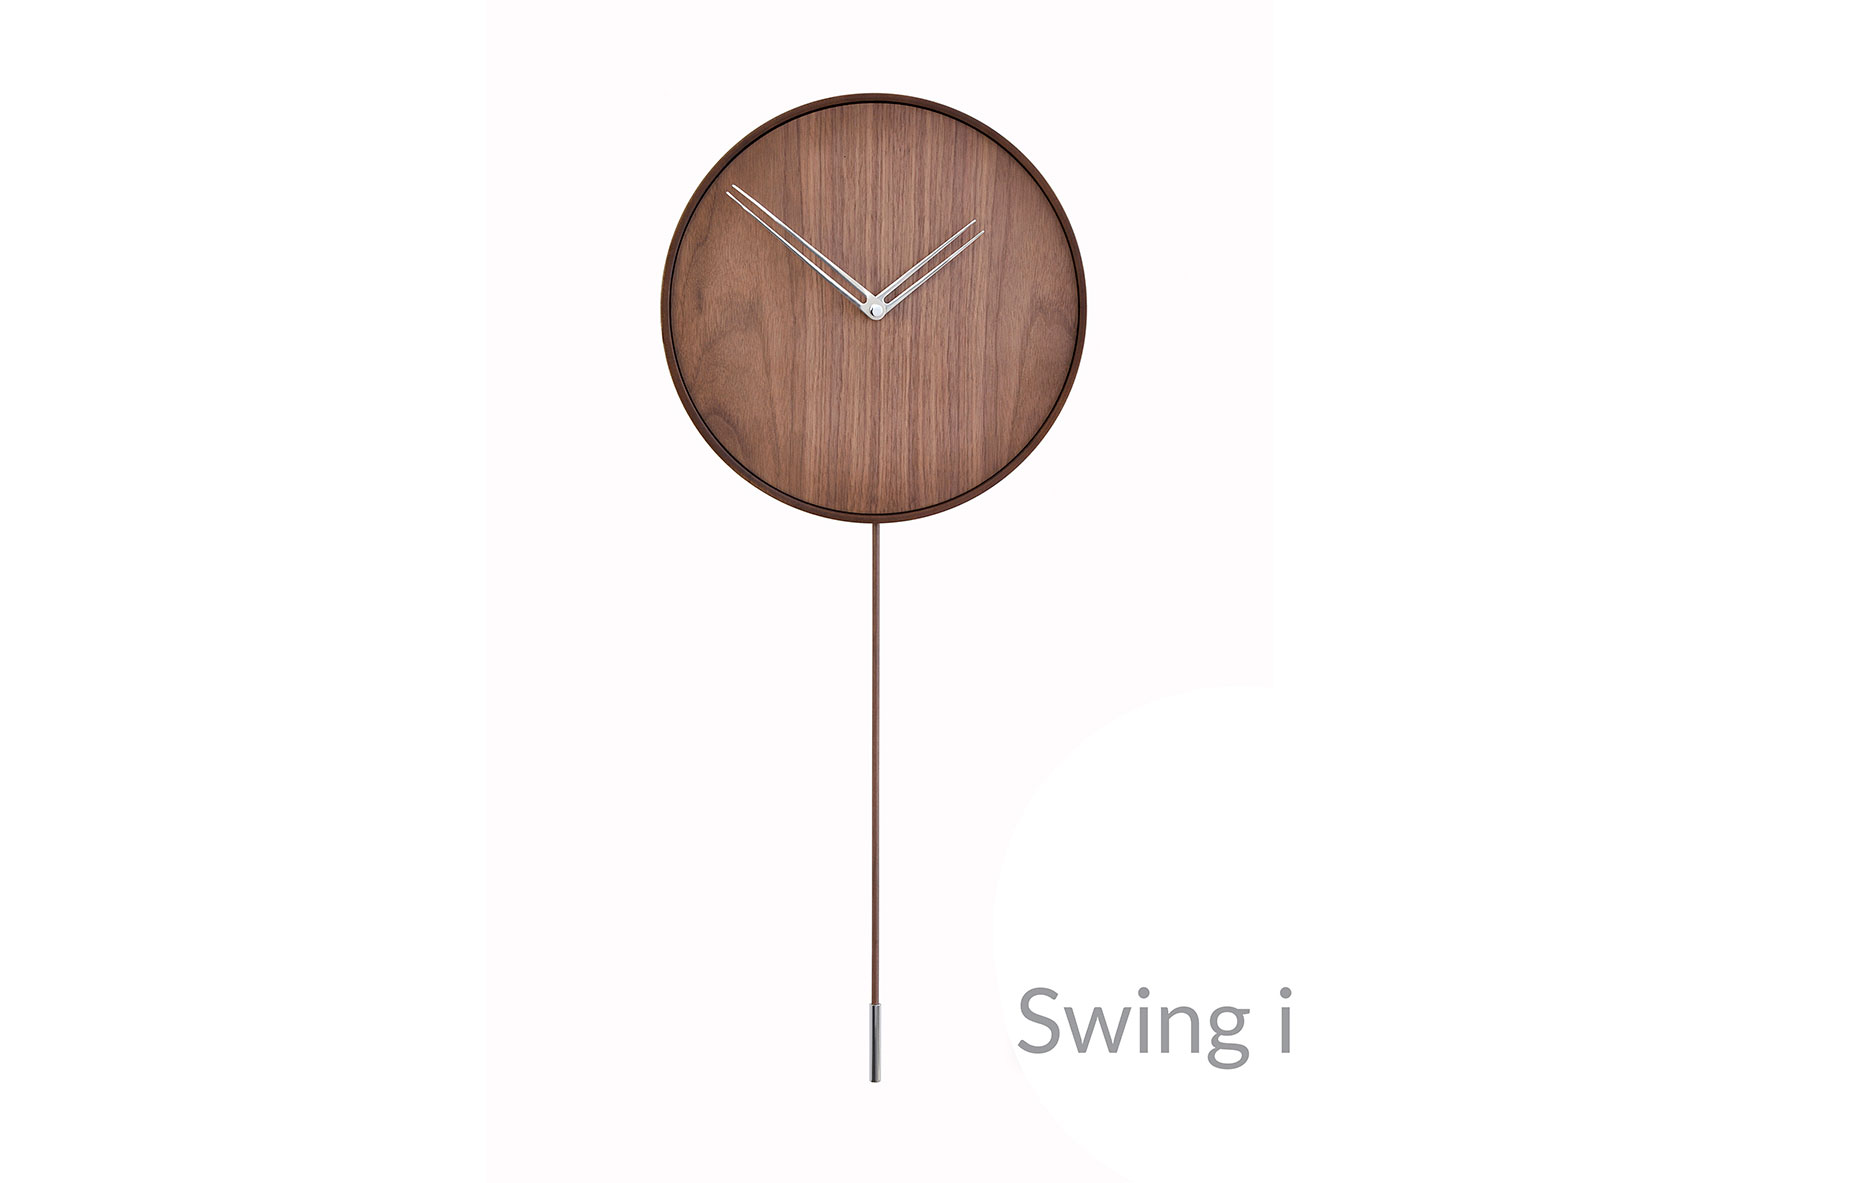 Wallnut Wall Pendulum Clock